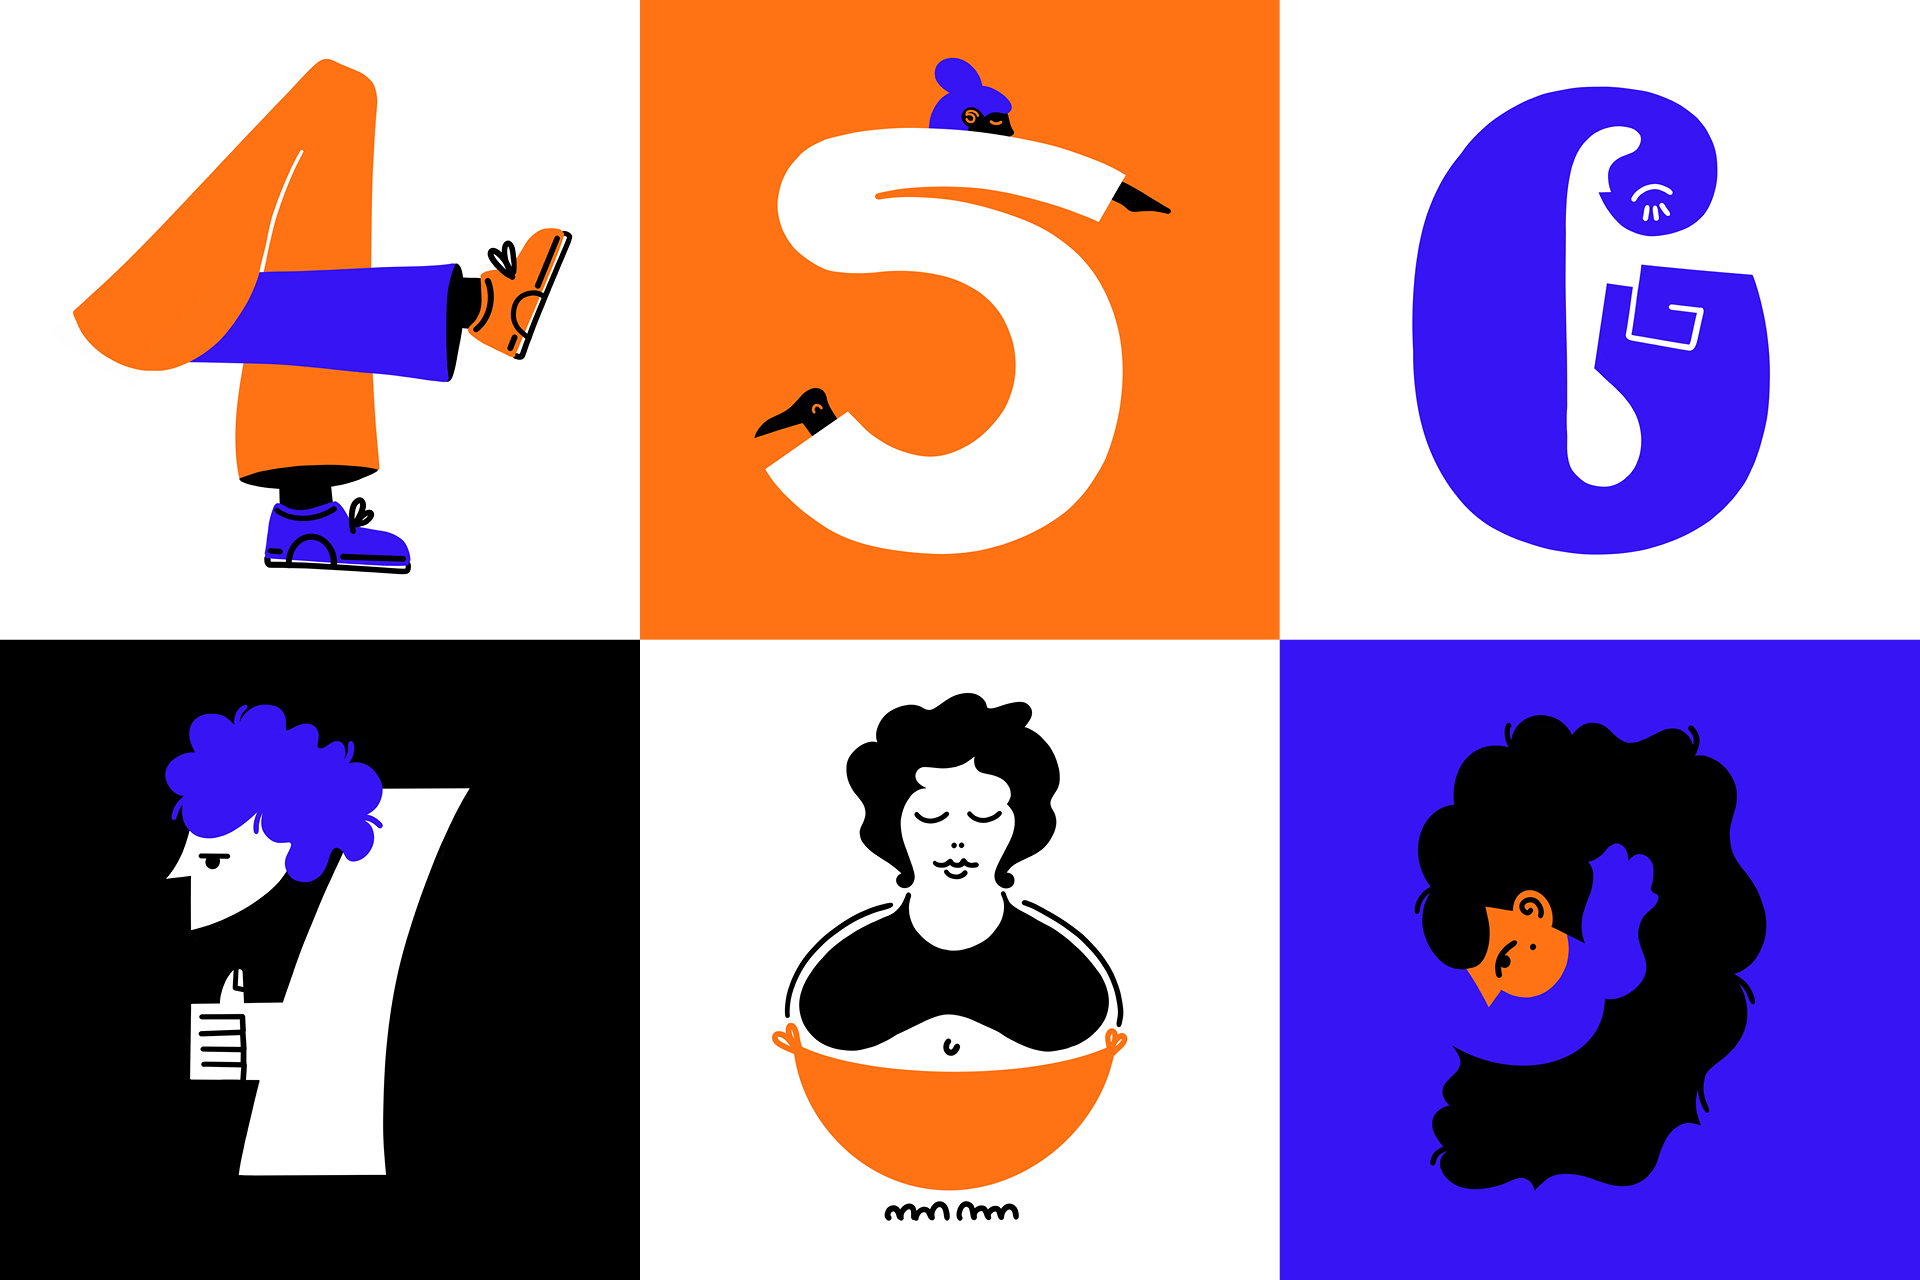 Illustrating the 36 glyphs of the alphabet for 36 Days of Type edition 8